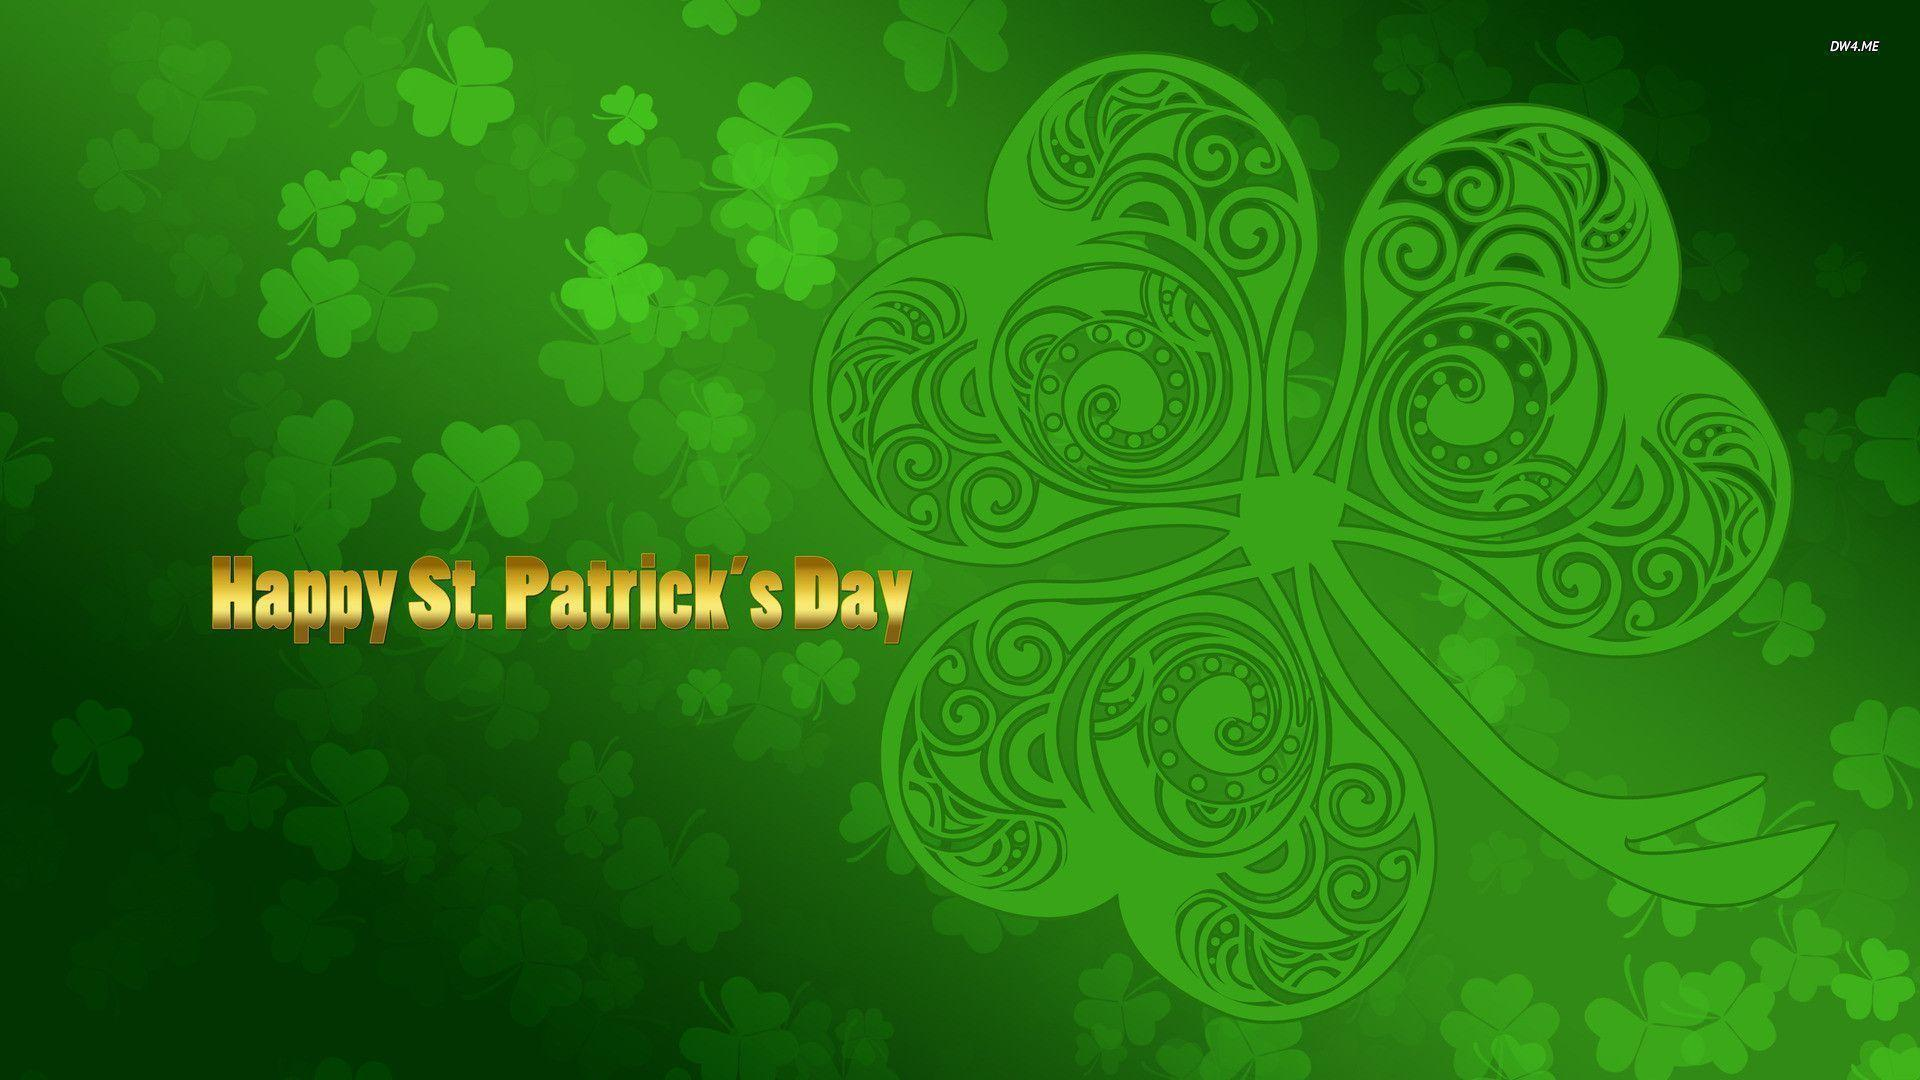 Happy Saint Patrick's Day wallpaper - Holiday wallpapers - #